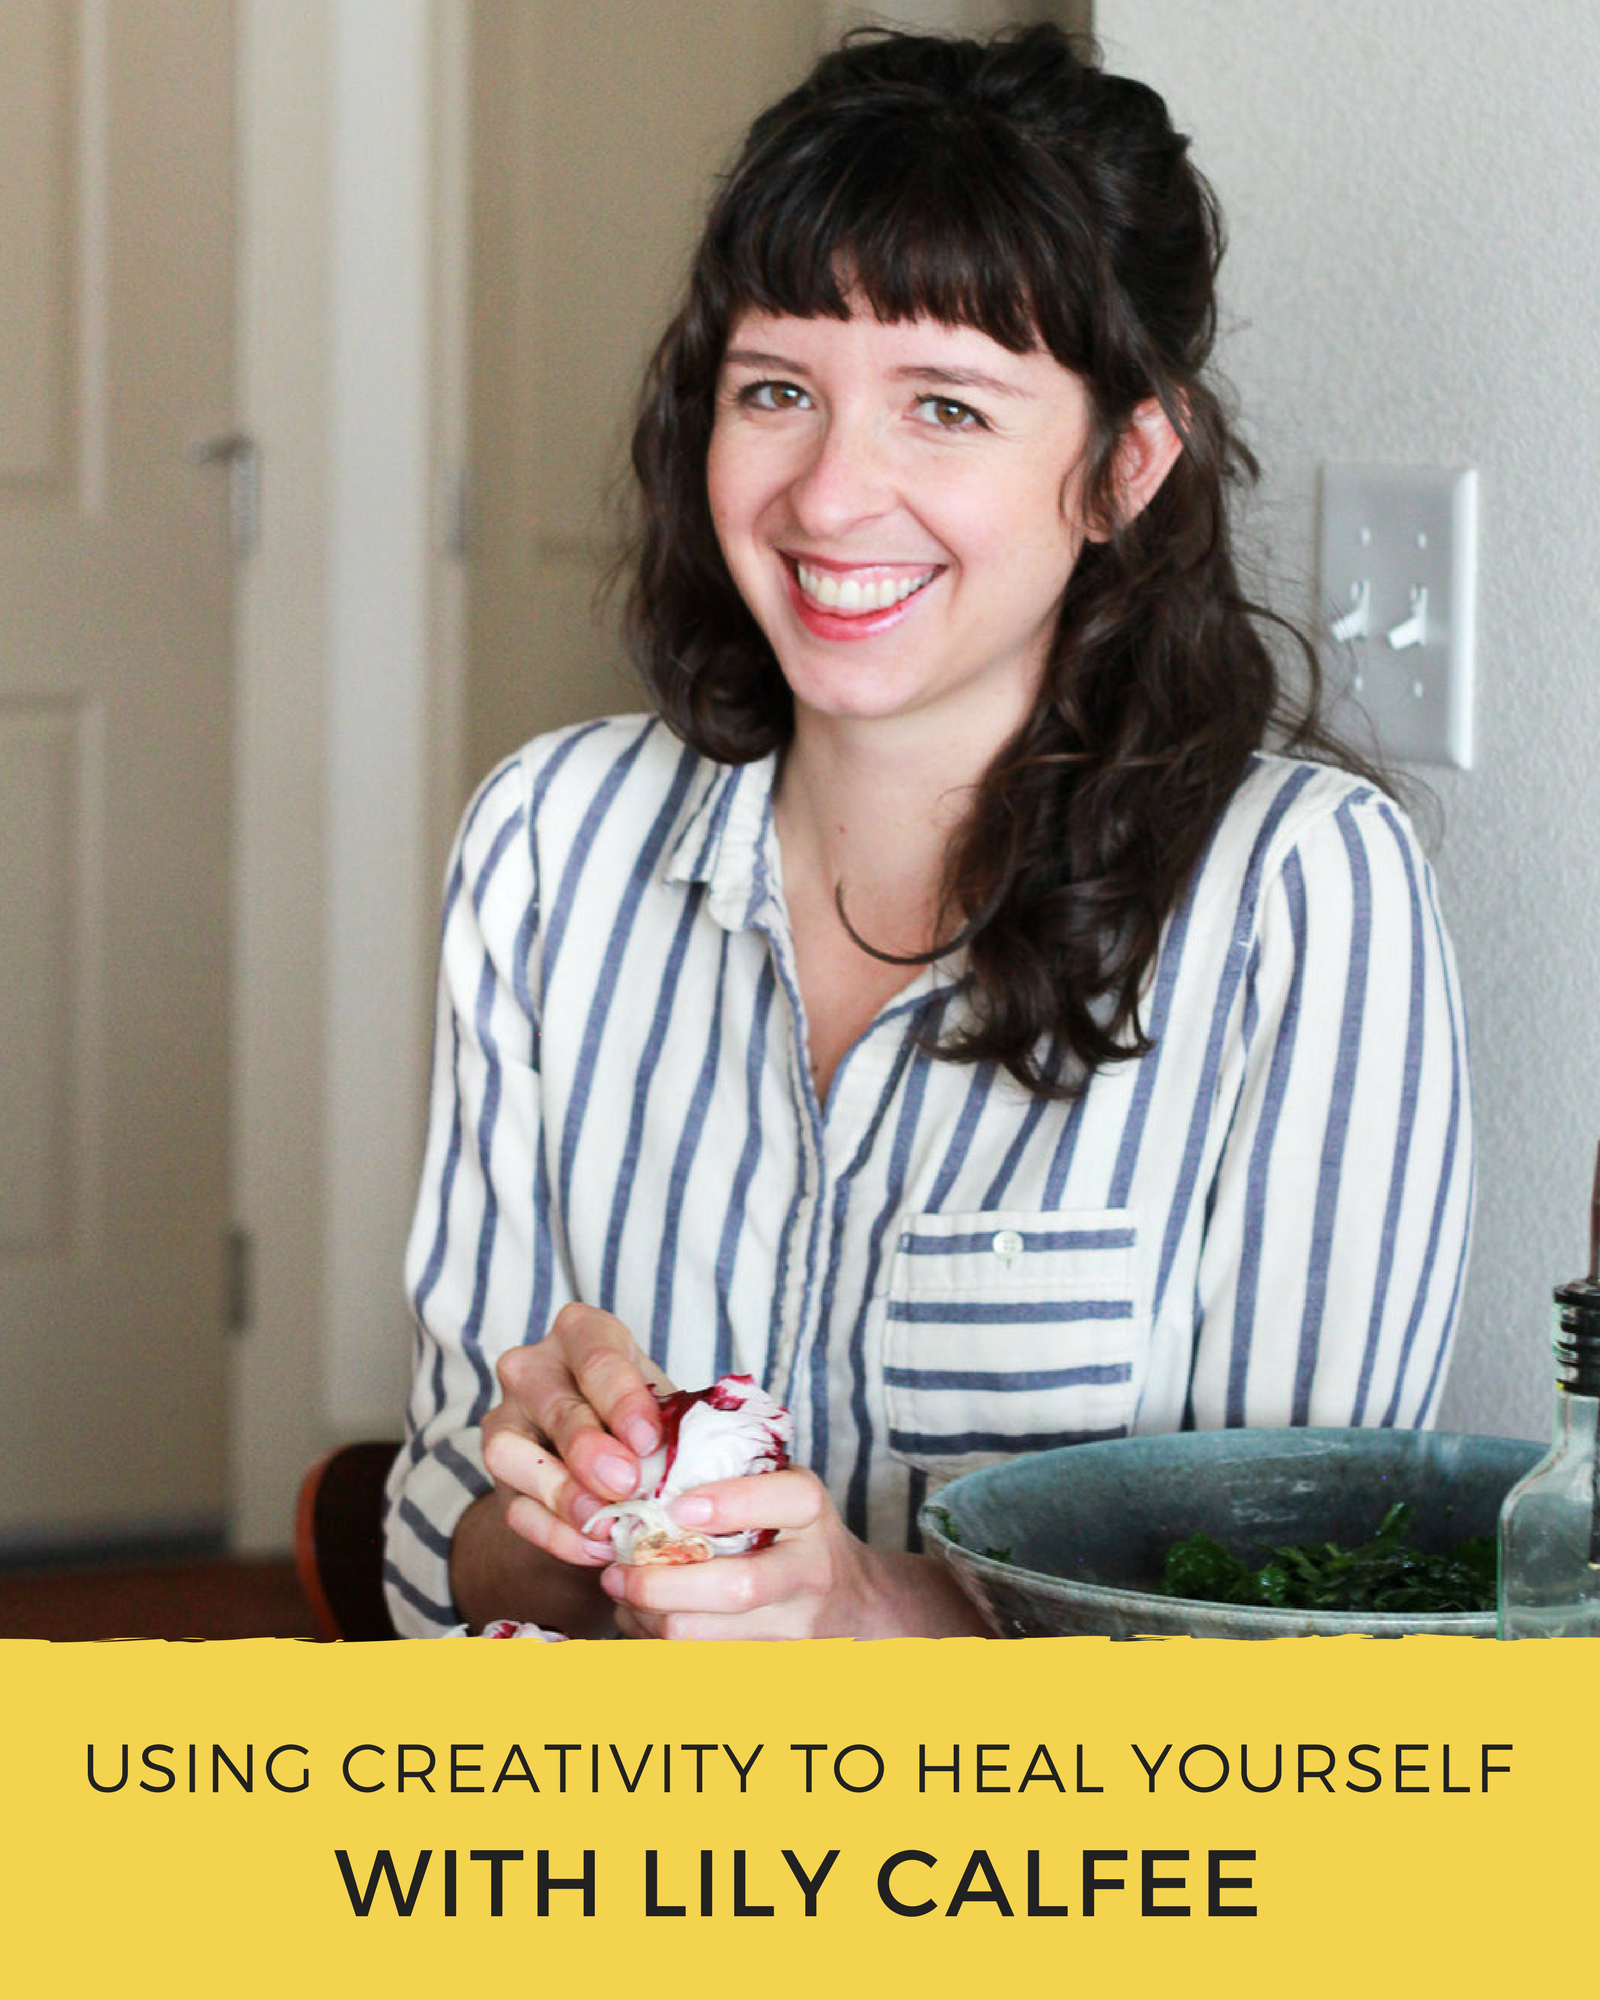 using-creativity-to-heal-yourself-with-lily-calfee.png